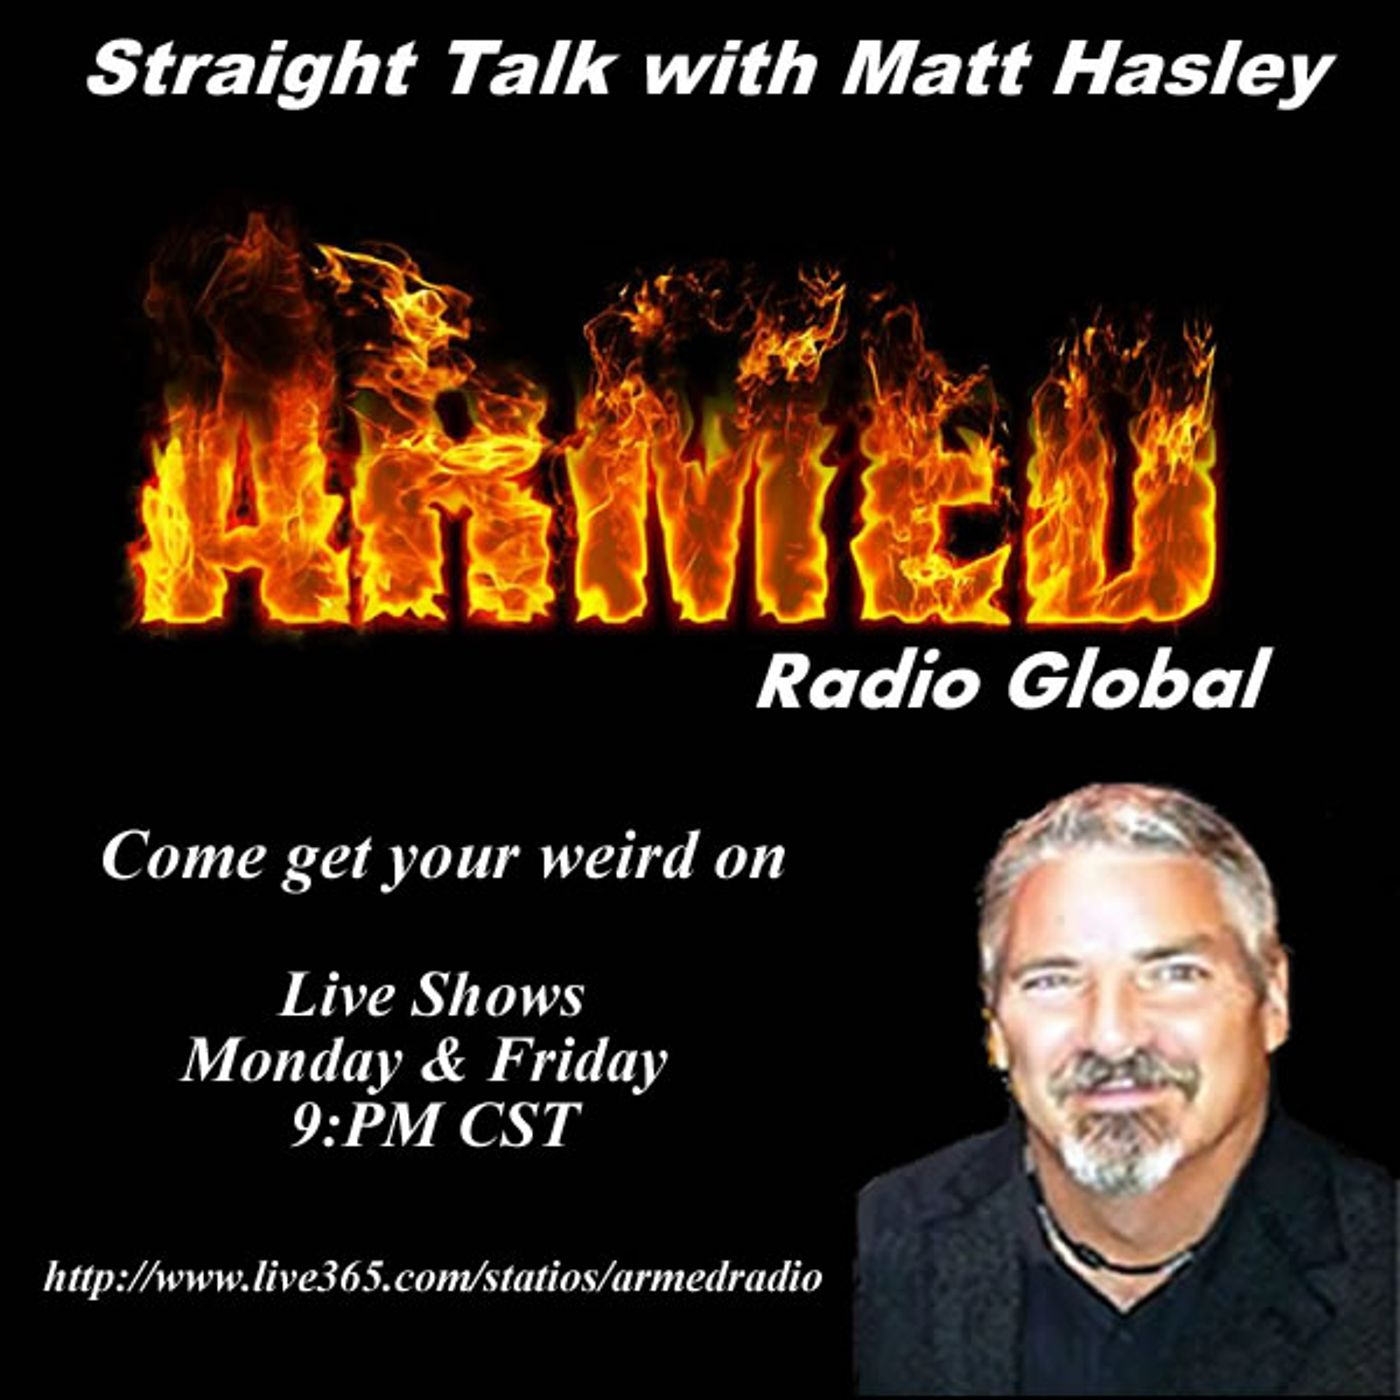 Straight Talk with Matt Hasley